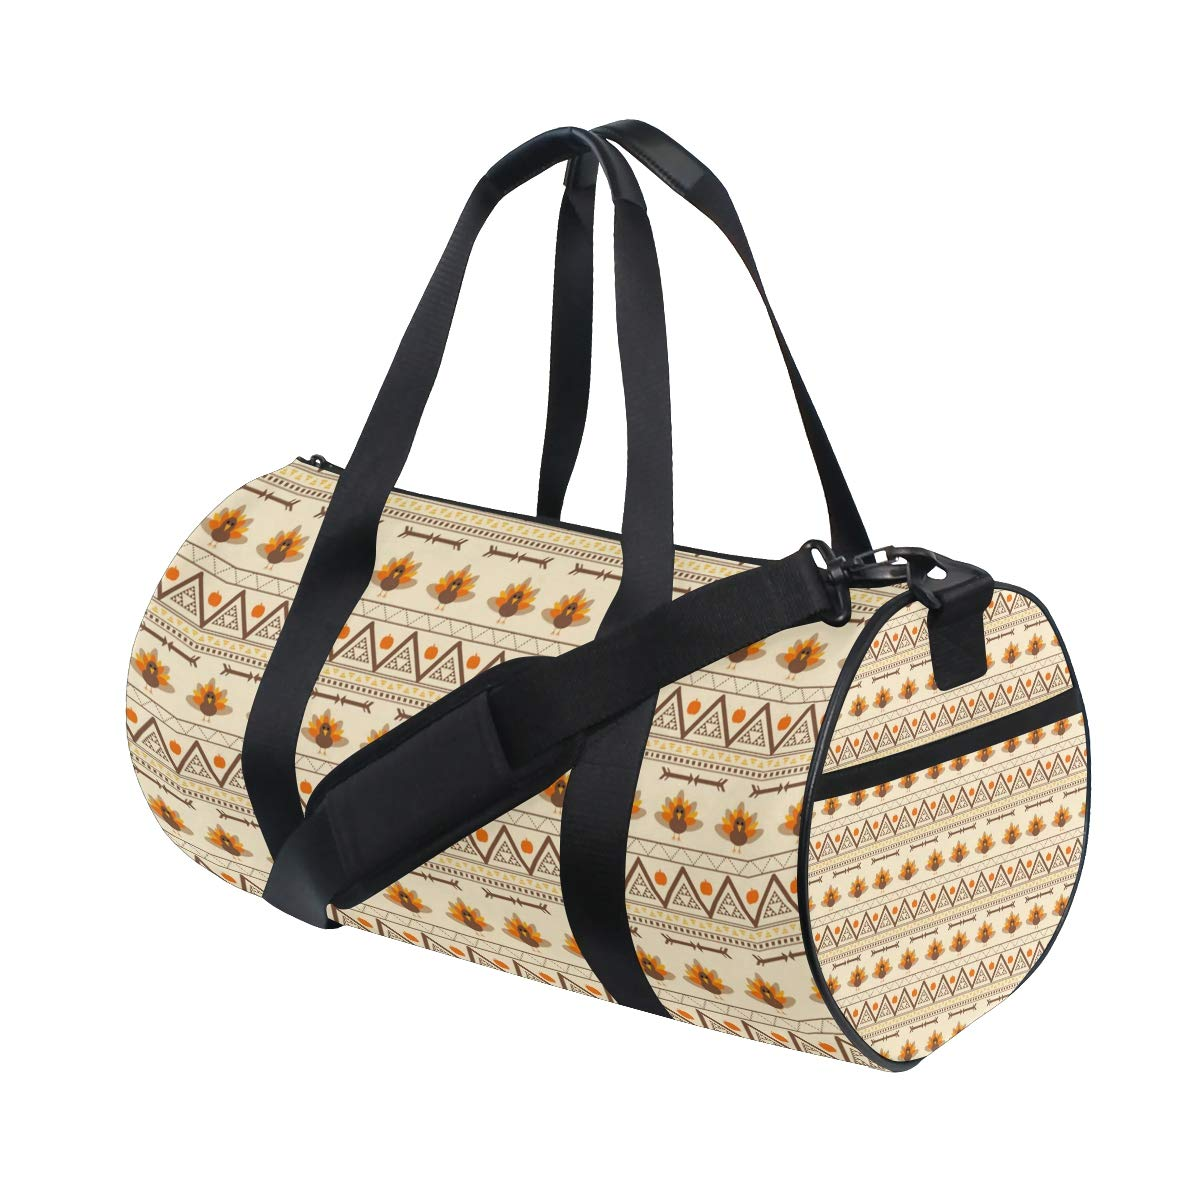 Sports Gym Duffel Barrel Bag Aztec Turkey Gobble Thanksgiving Travel Luggage Handbag for Men Women